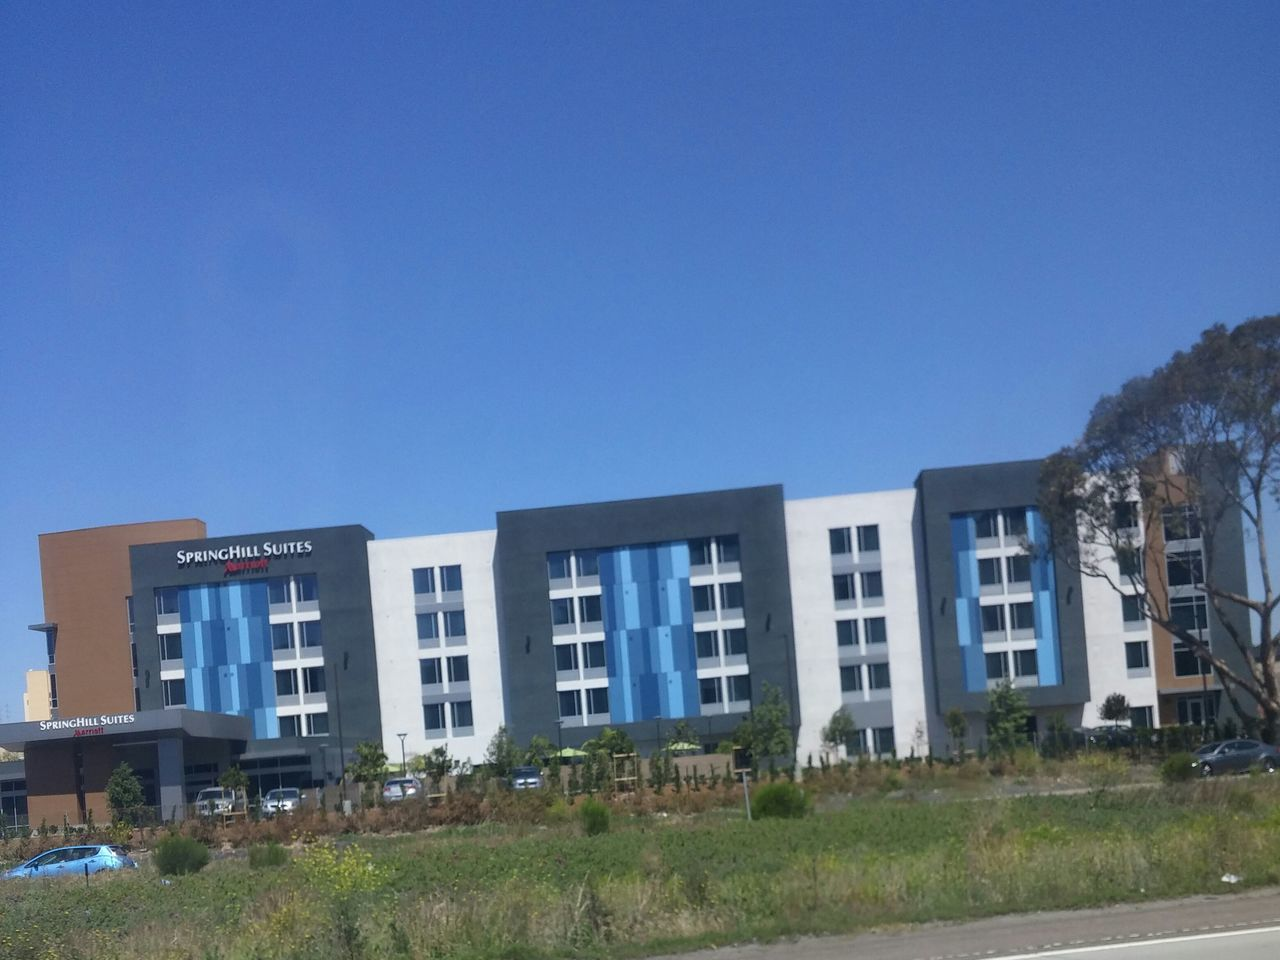 blue, architecture, clear sky, copy space, building exterior, day, no people, built structure, outdoors, grass, tree, sky